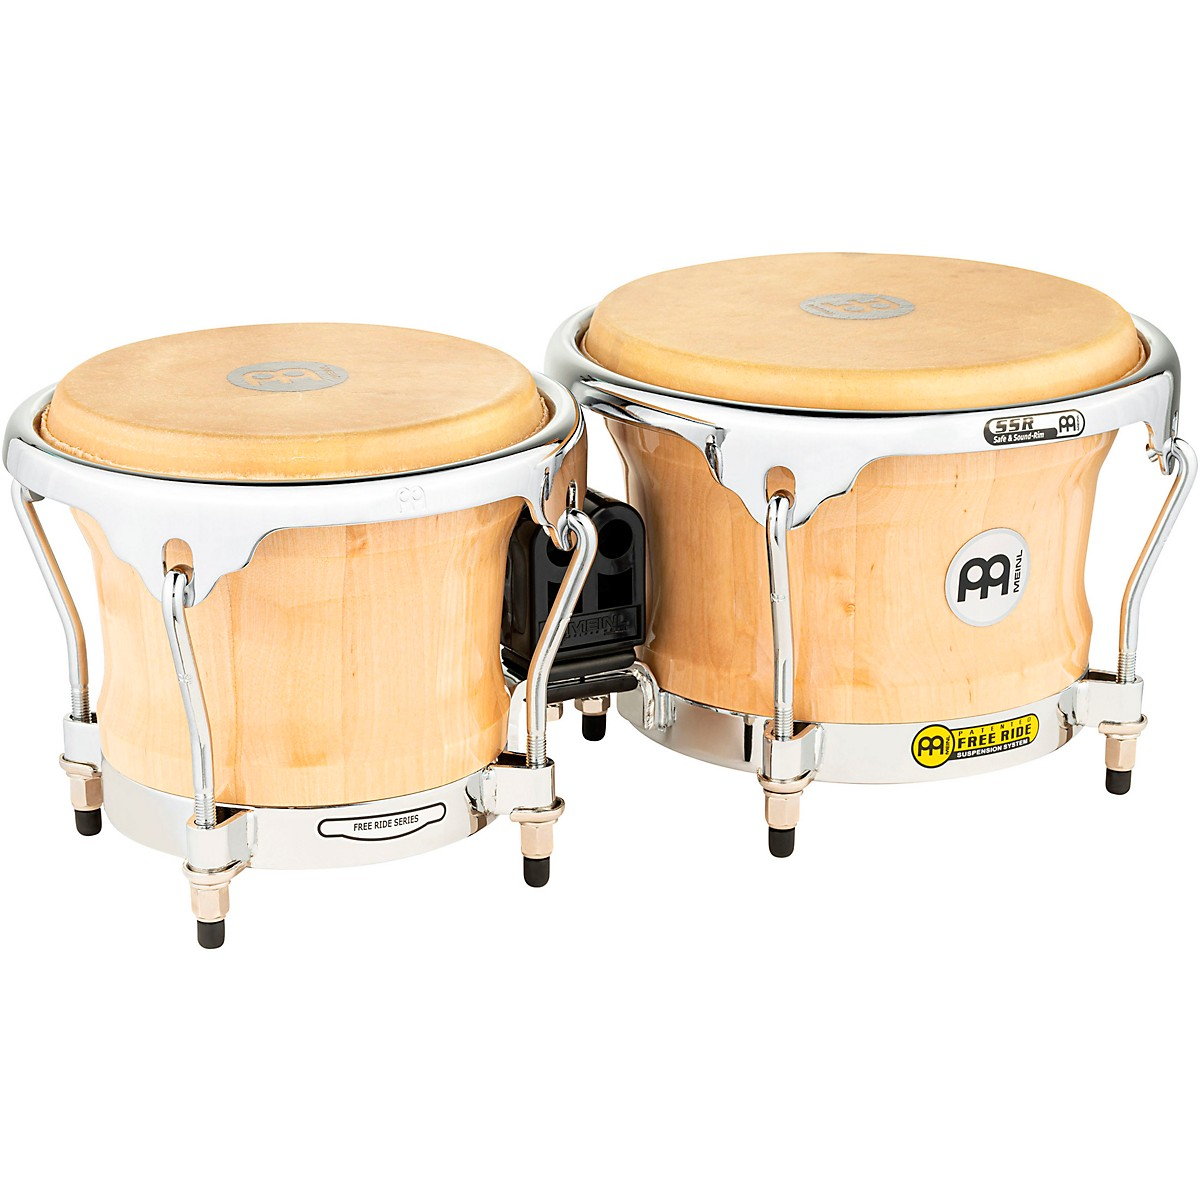 Meinl Woodcraft Series European Birch Bongos